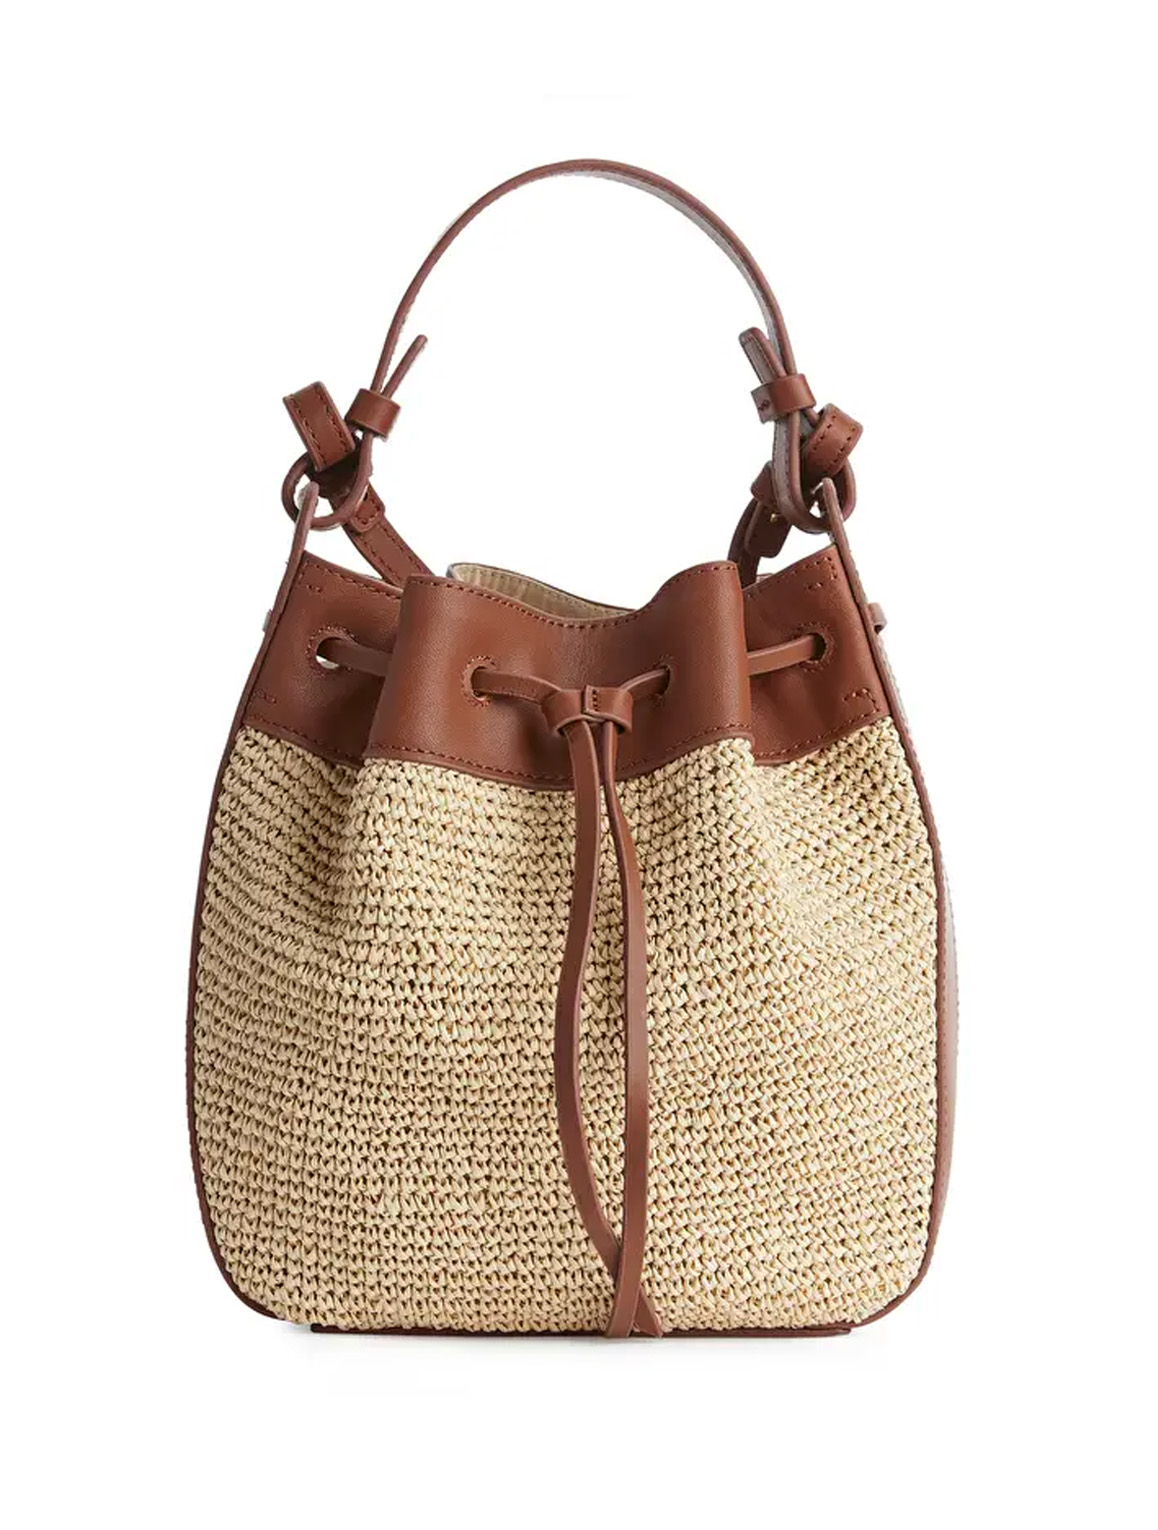 straw bags 2021